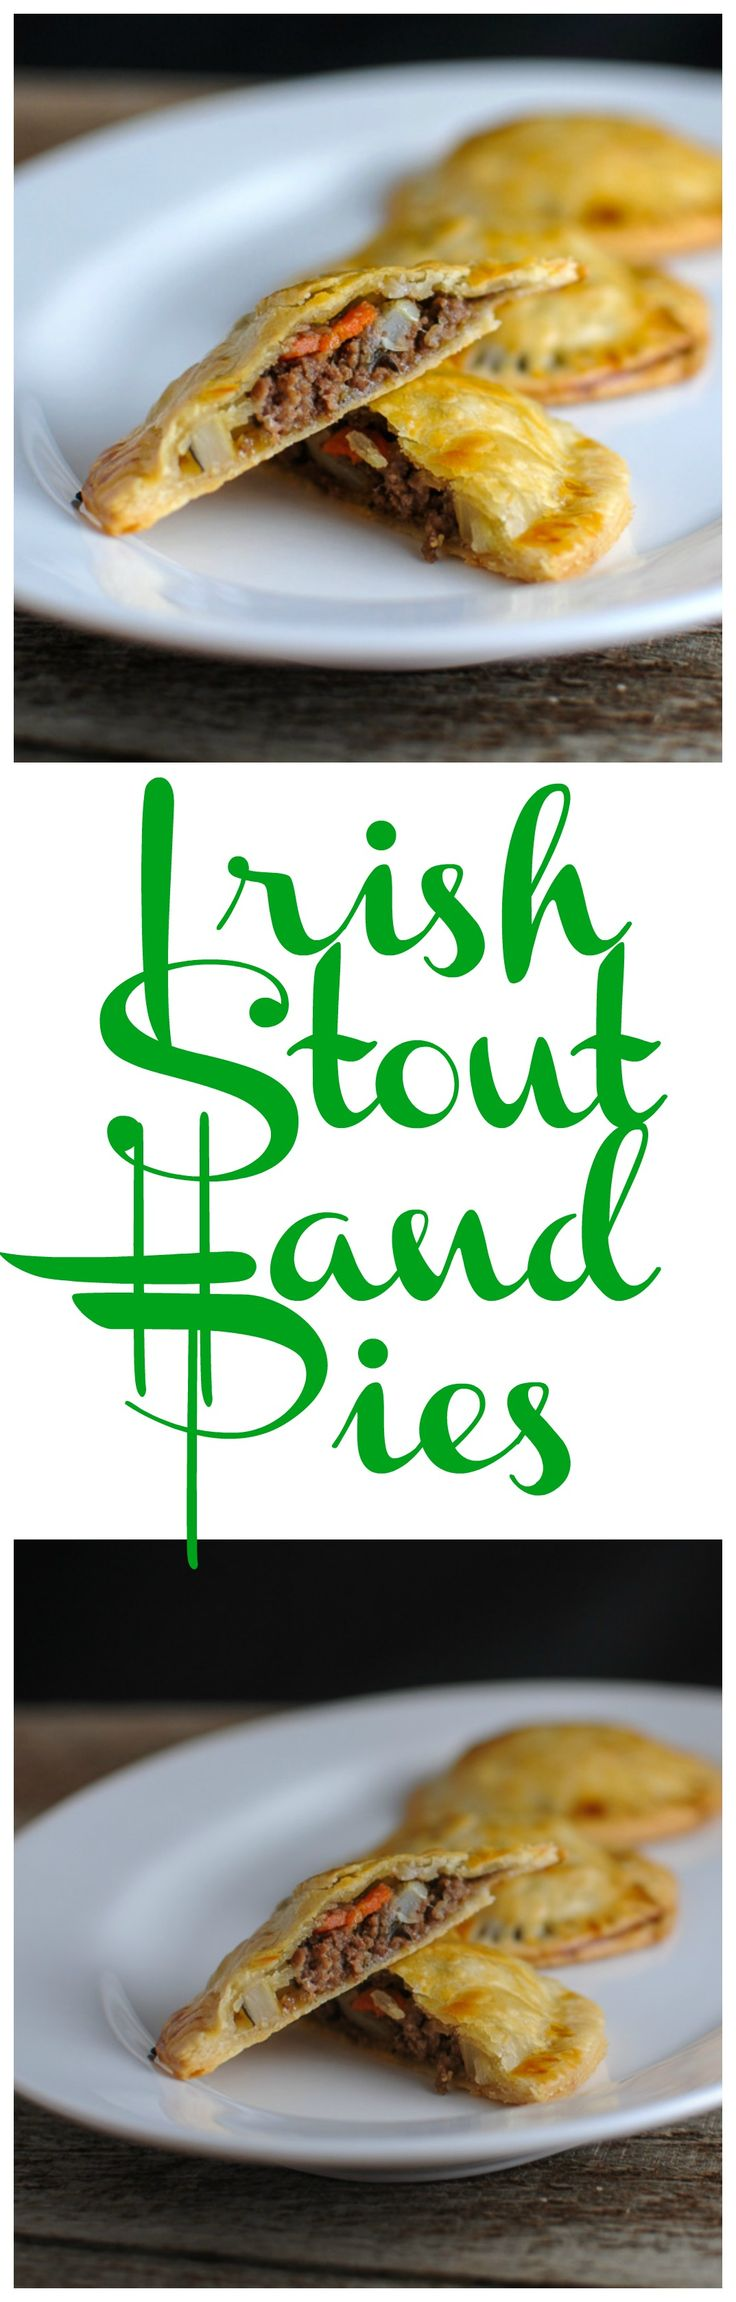 We came up with a little traditional Irish cuisine for St. Patrick's Day because we wanted an alternative to corned beef and cabbage.